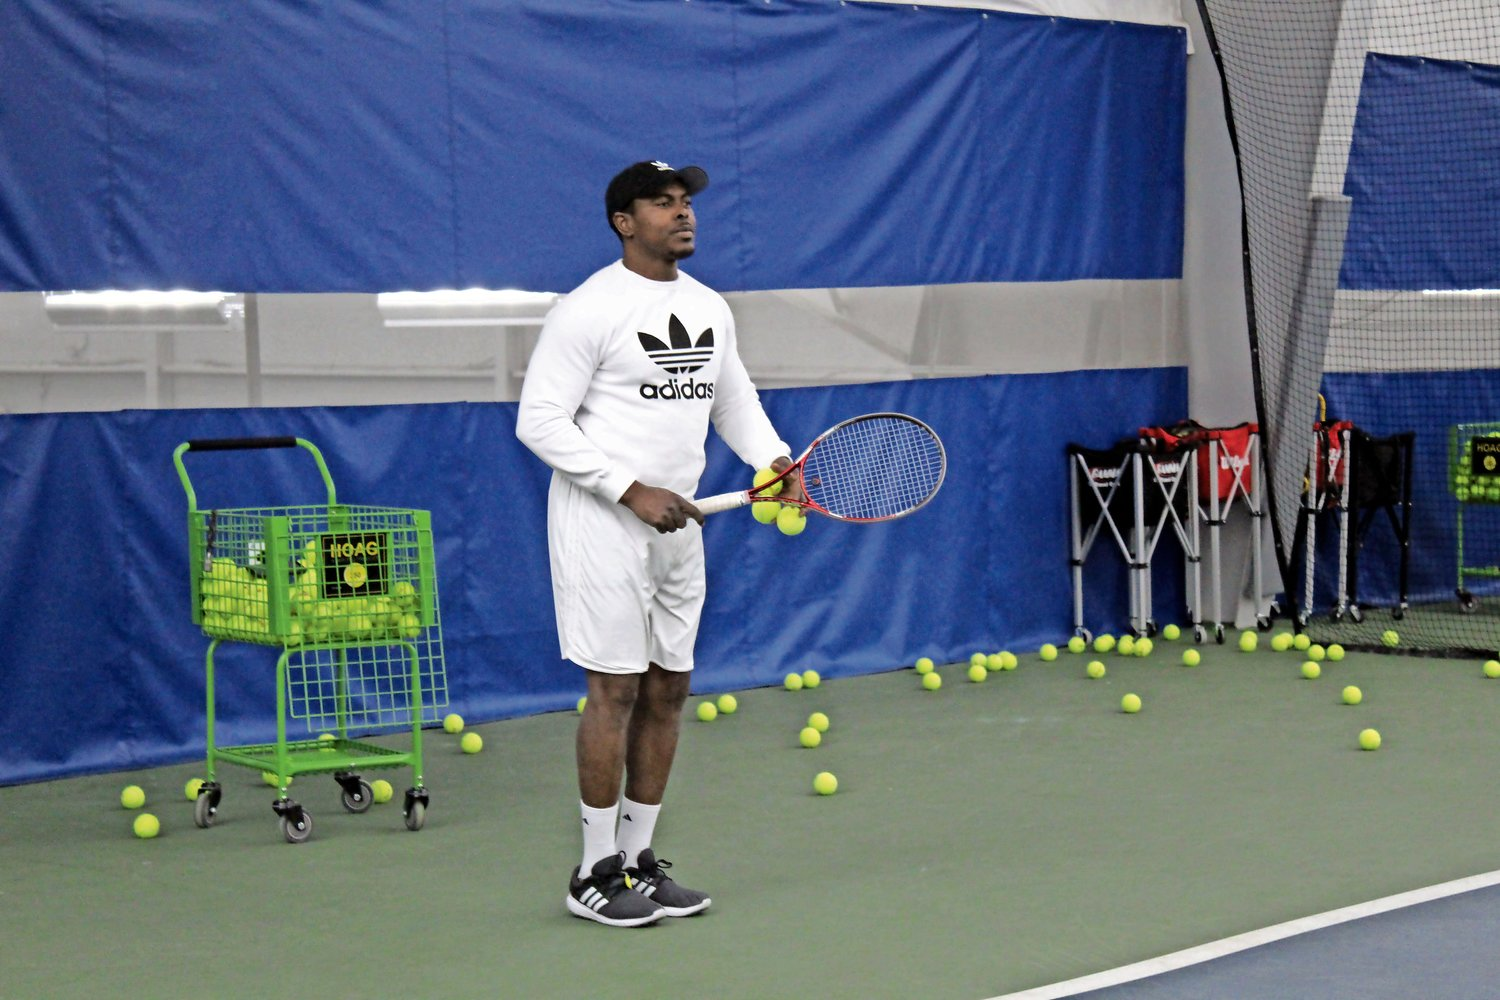 Instructor Gary Harrison, from Jamaica, prepared to launch serves to his client at the Glen Head Racquet Club.